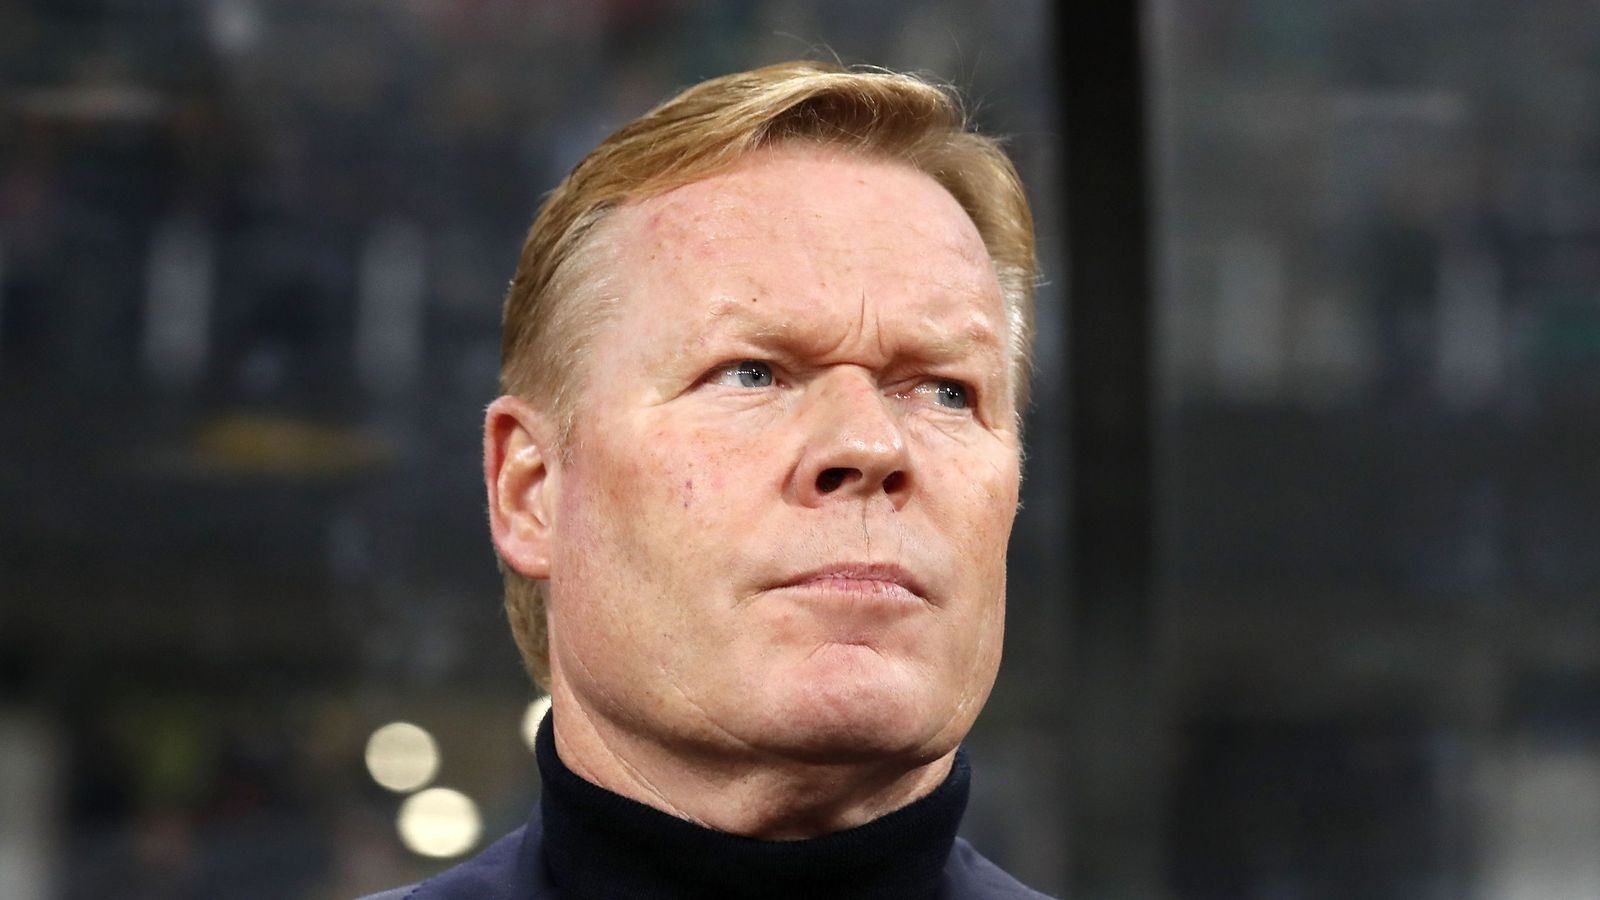 Koeman 'fit as a fiddle' after heart procedure